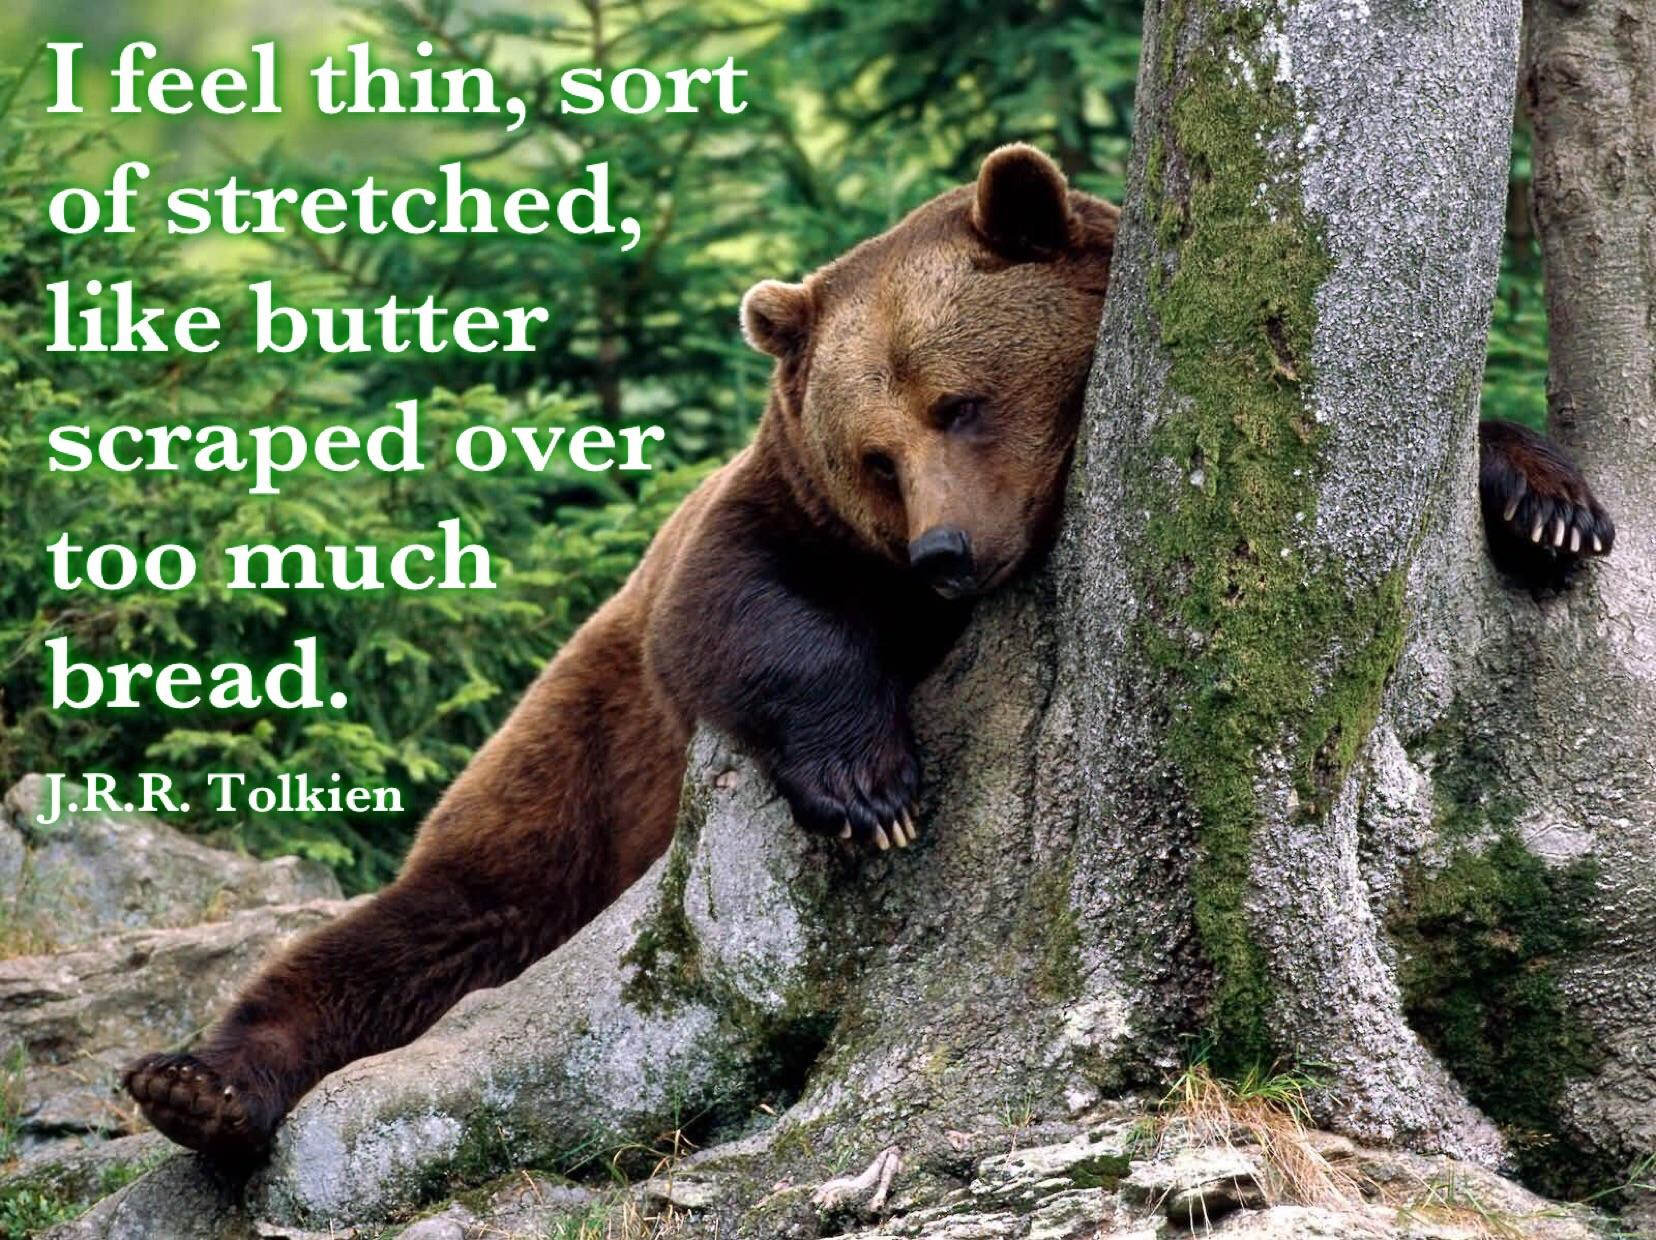 """I feel thin, sort of stretched, like butter scraped over too much bread."" – J.R.R. Tolkien [1656×1240]"